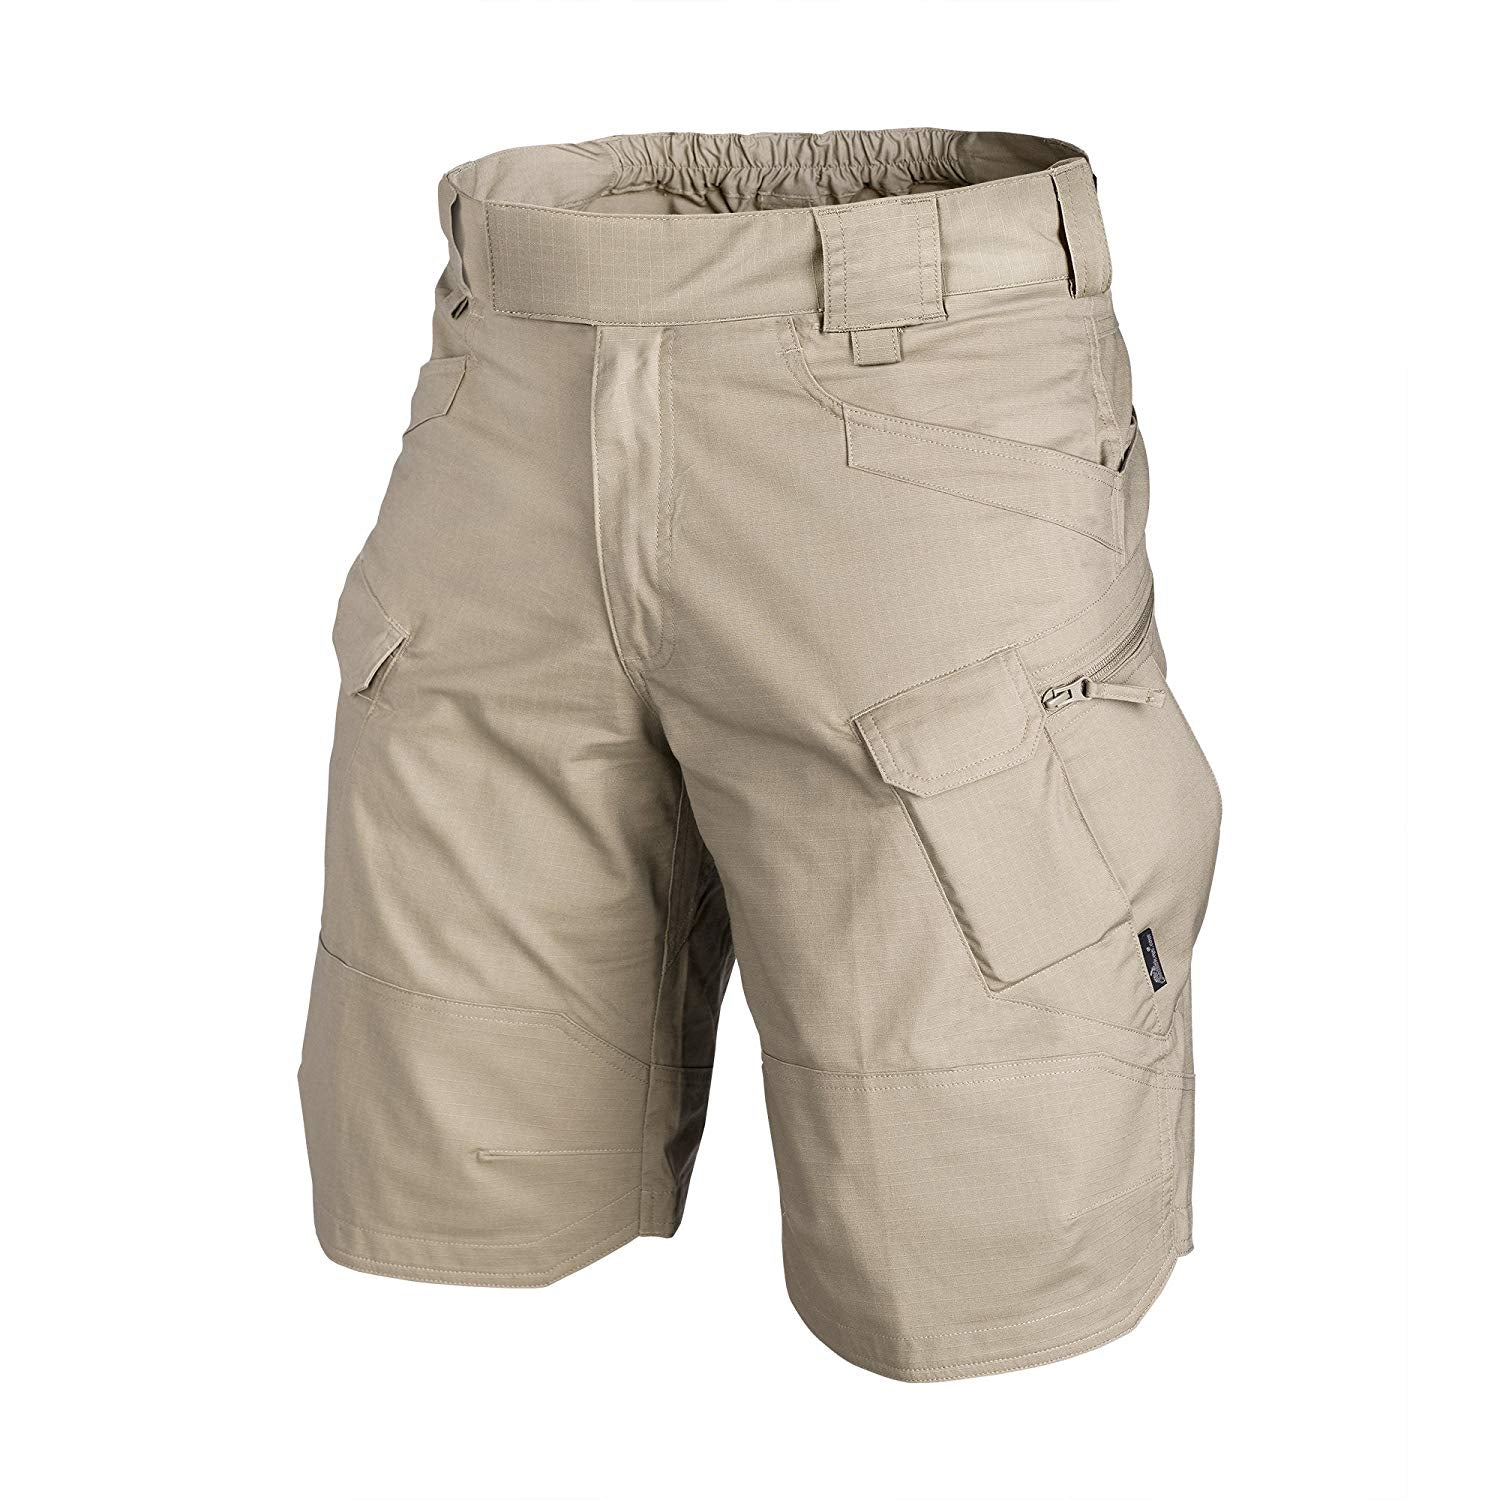 Waterproof Tactical Shorts-Best for Summer